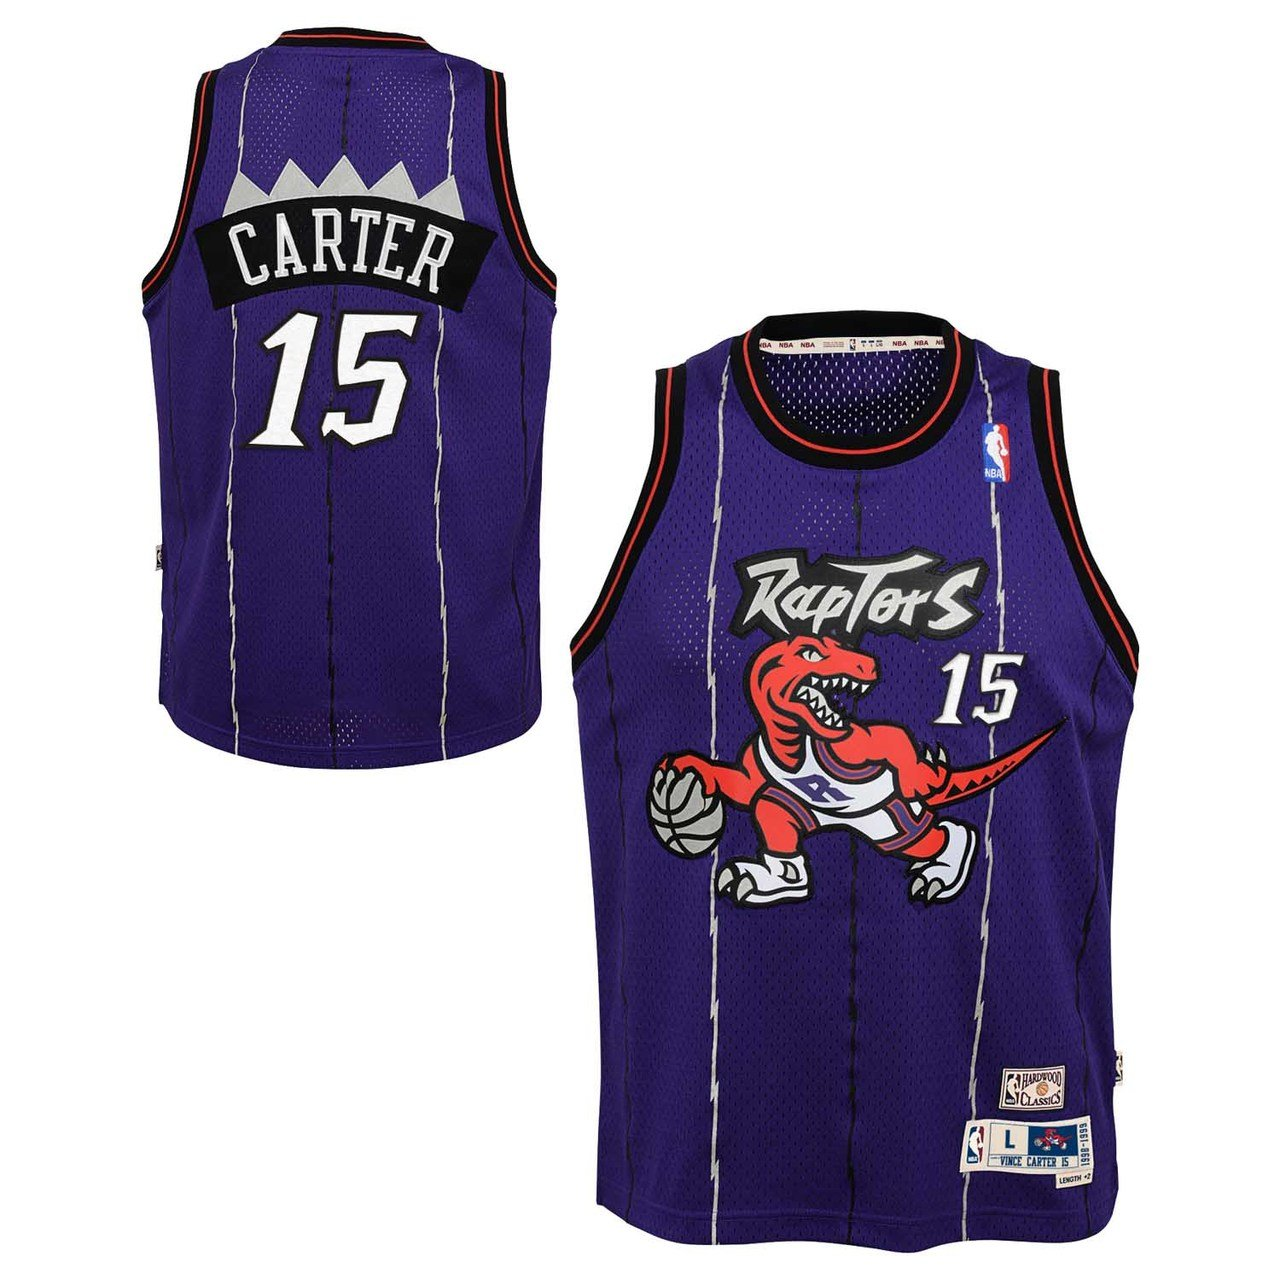 info for 81837 1267b Outerstuff Vince Carter Toronto Raptors NBA Youth Throwback 1998-99  Swingman Jersey